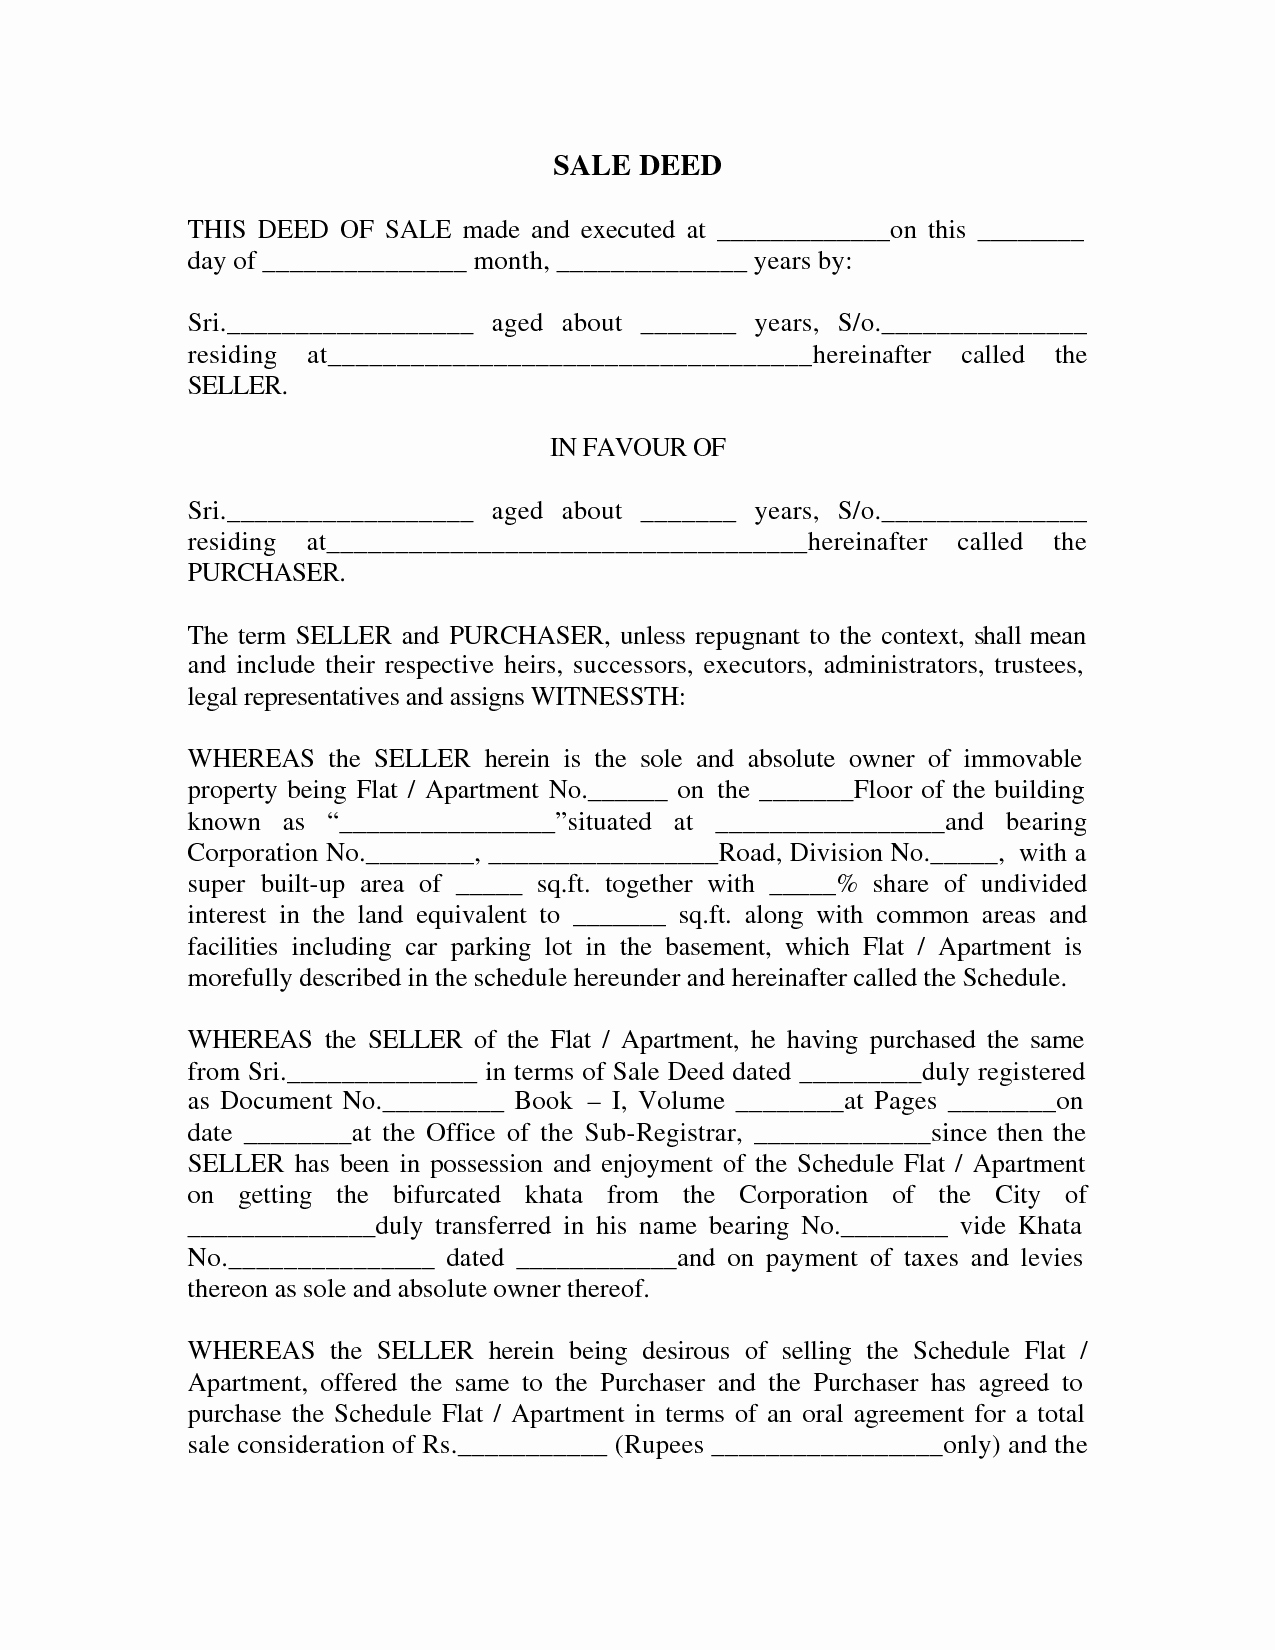 Deed Of Sale for Car Best Of Sale Deed format Images Sale Deed for Car